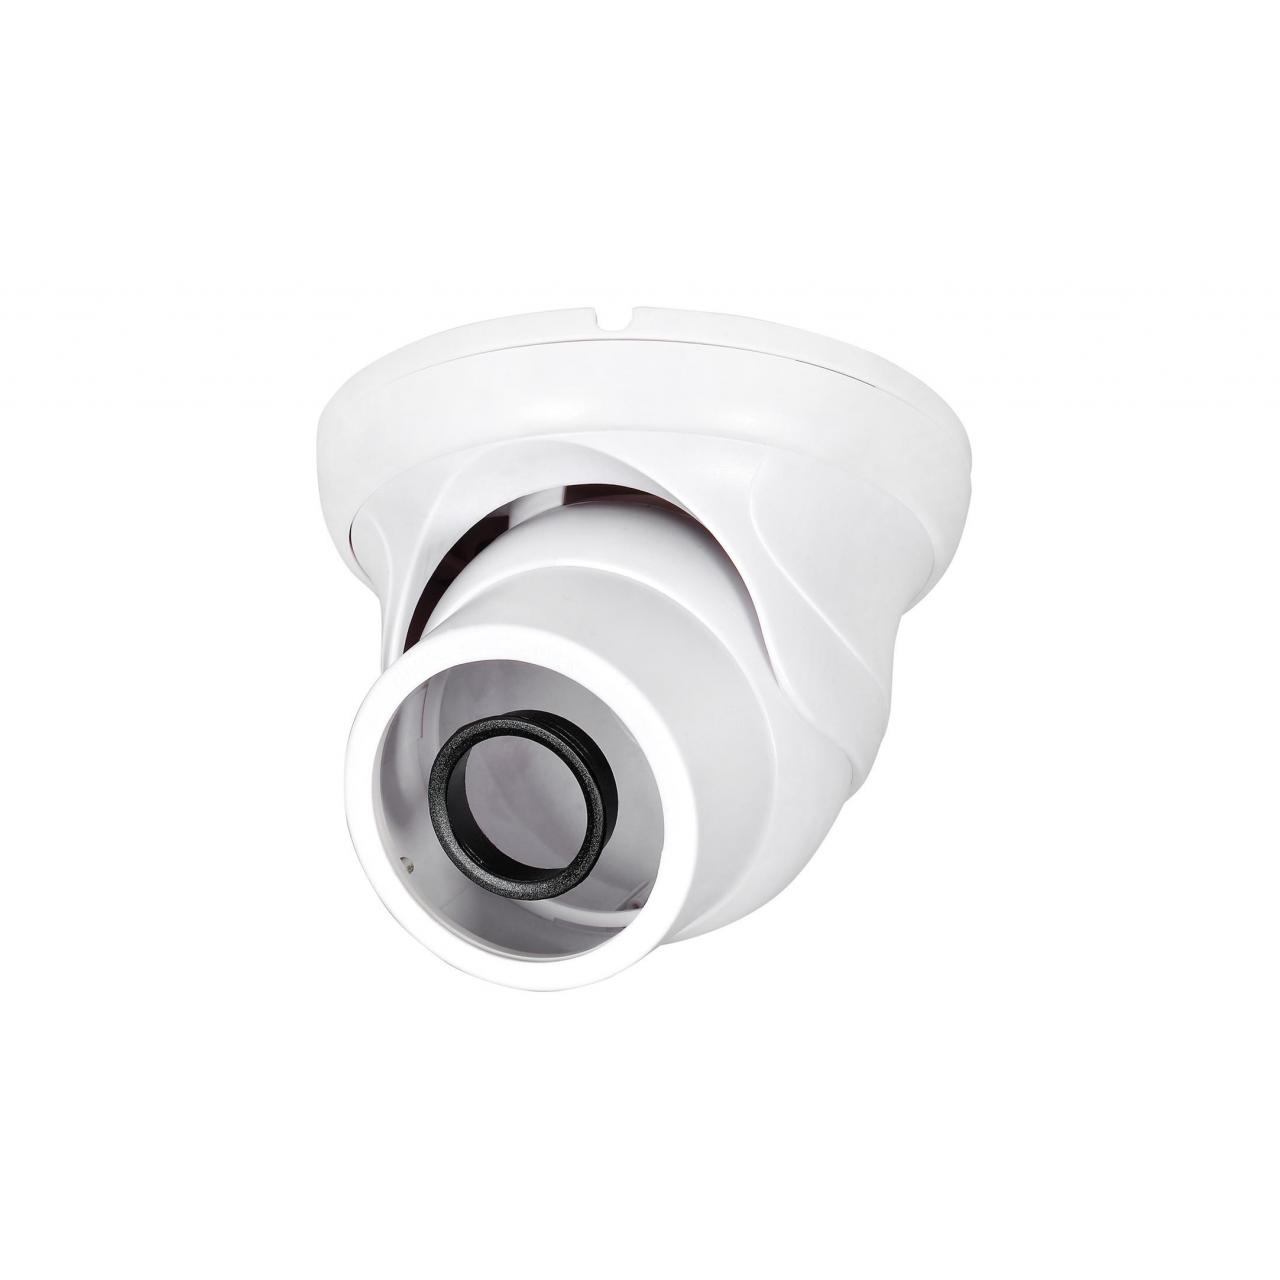 Buy cheap eyeball camera A6106 plastic eyeball camera product